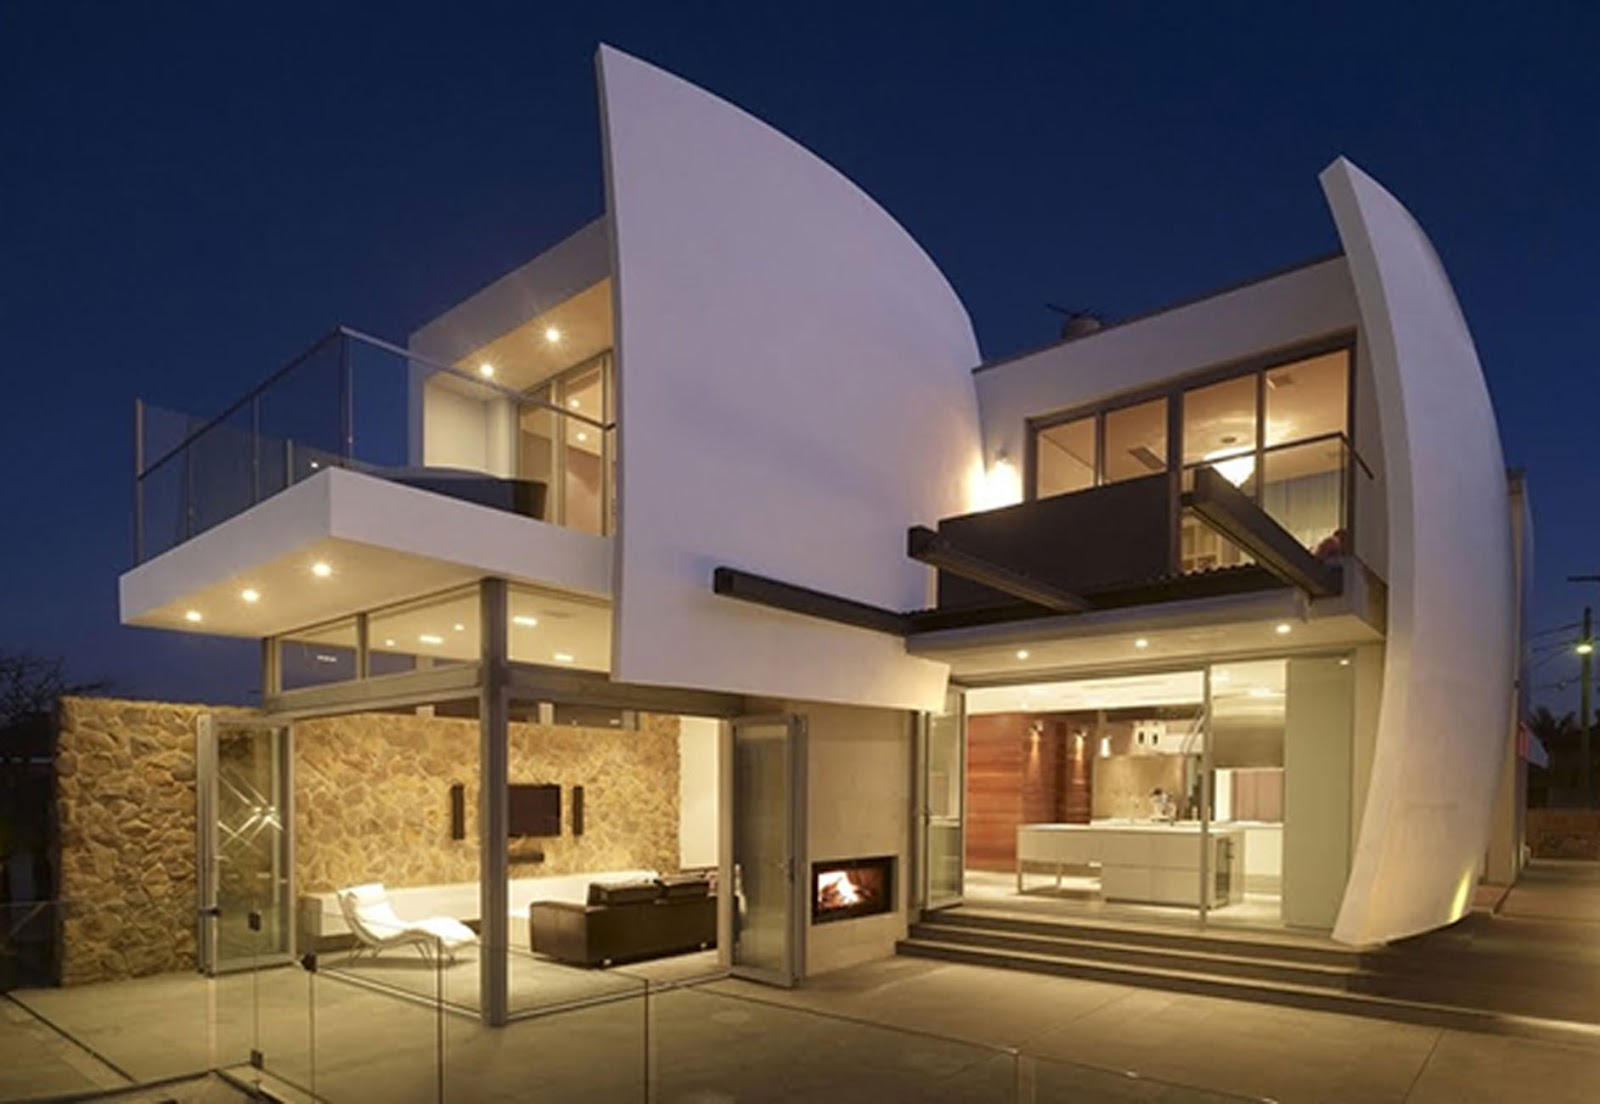 Luxury home with Futuristic Architecture Design ~ HOMEVERO